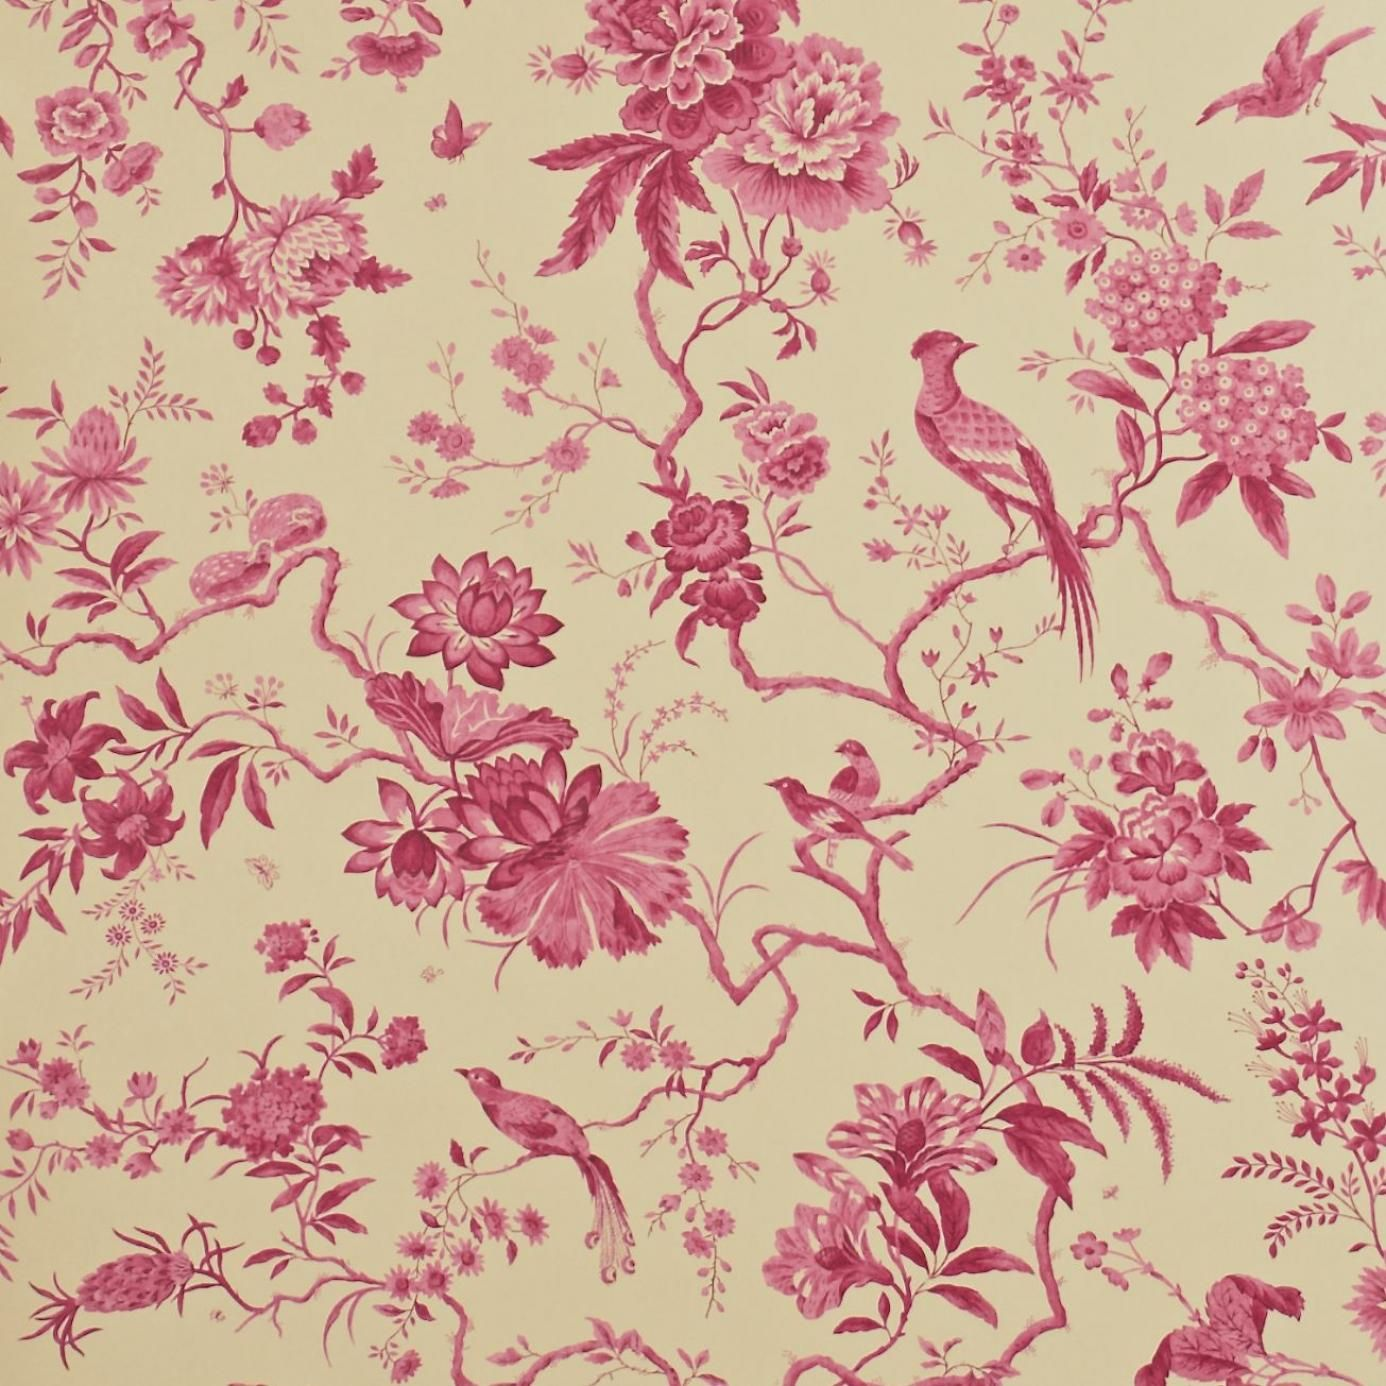 21 Best Toile Wall Paper Images On Pinterest: Pillemont Toile Wallpaper